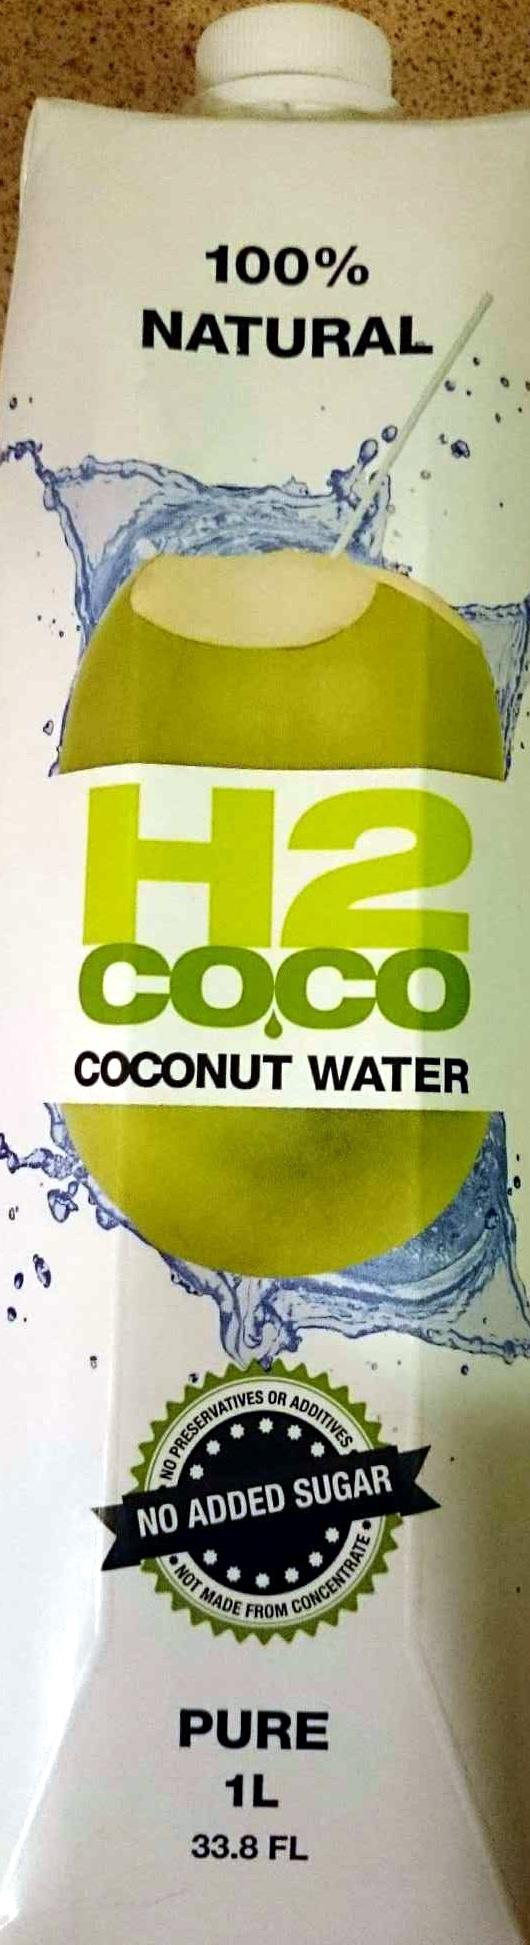 Cocnut Water - Product